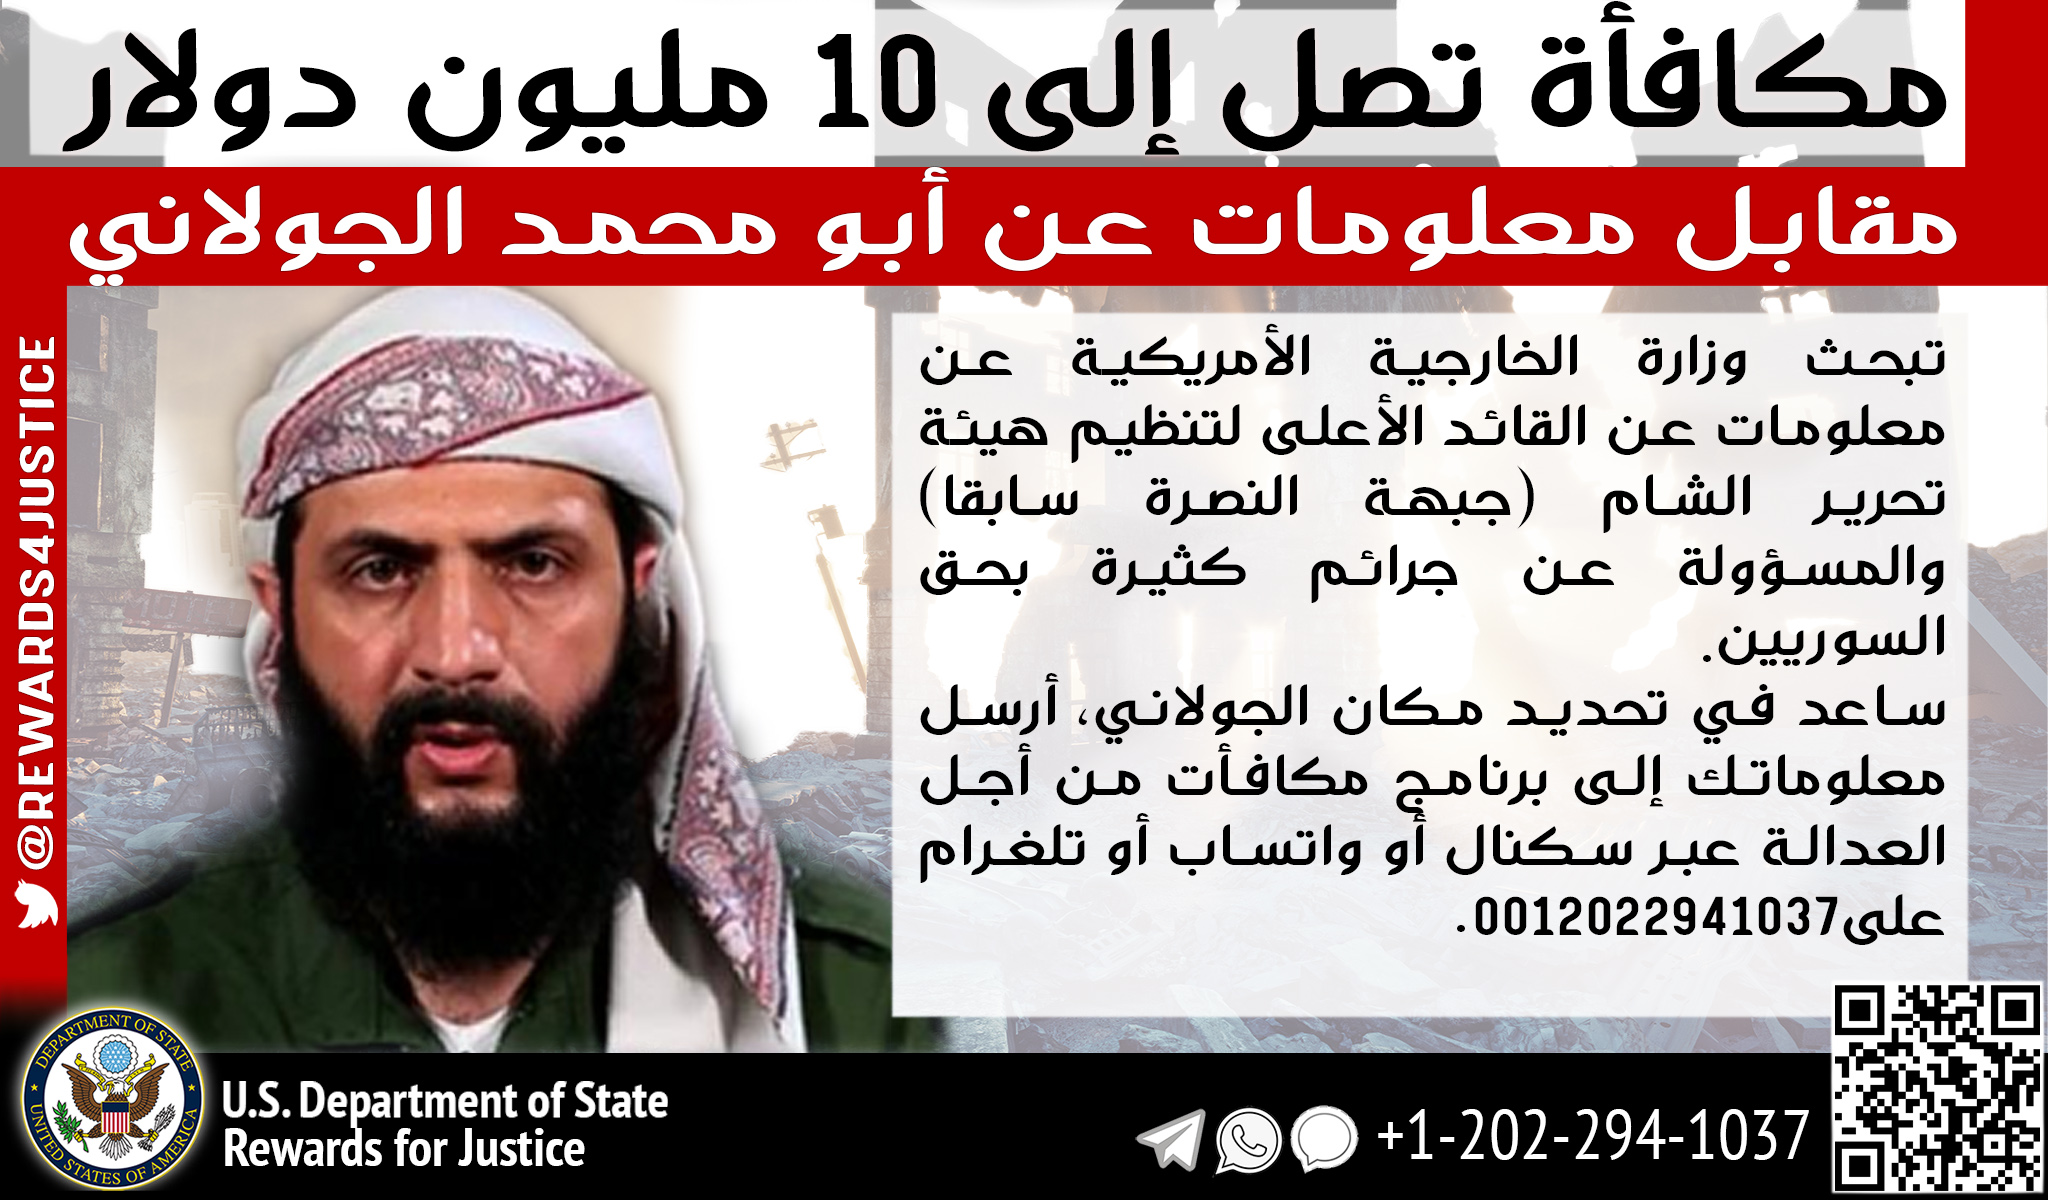 Out Of A Sudden: U.S. Remembered Leader Of Hay'at Tahrir al-Sham Is A Wanted Terrorist